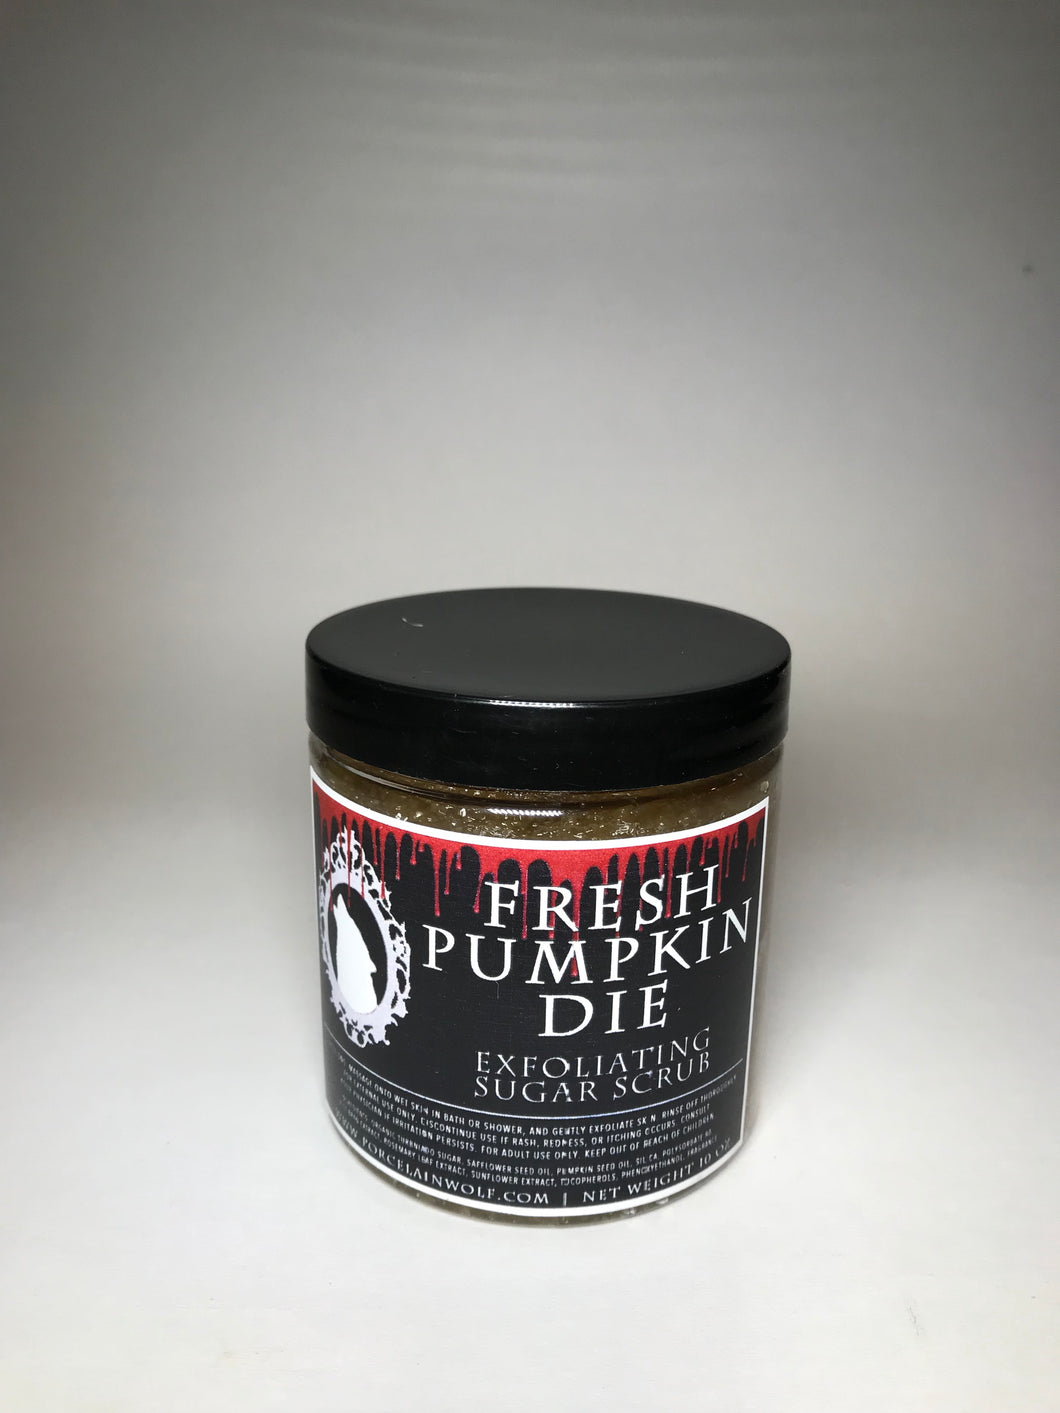 FRESH PUMPKIN DIE EXFOLIATING SUGAR SCRUB 10oz